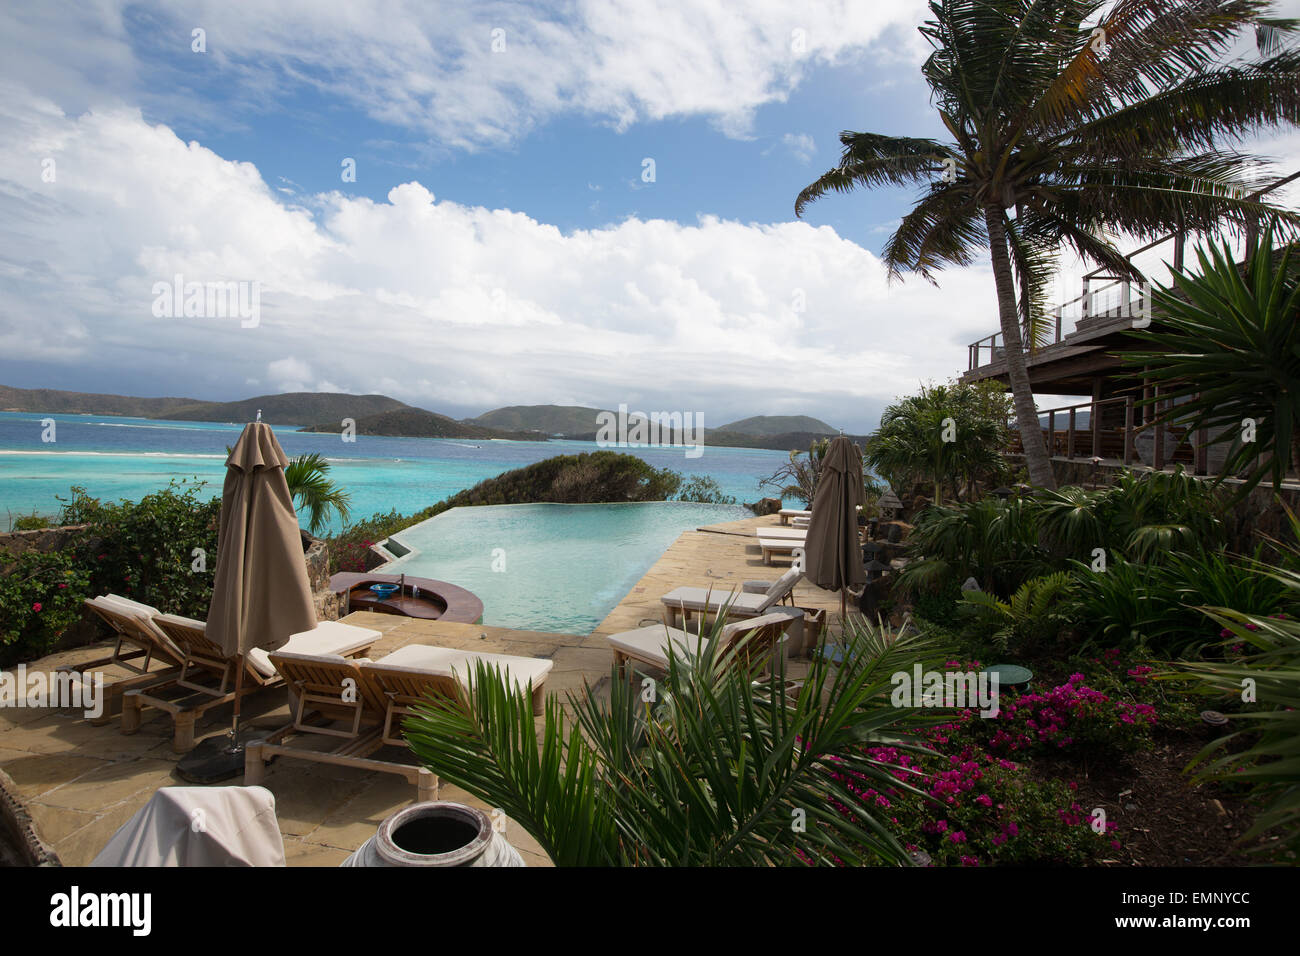 How Expensive To Live In Virgin Islands